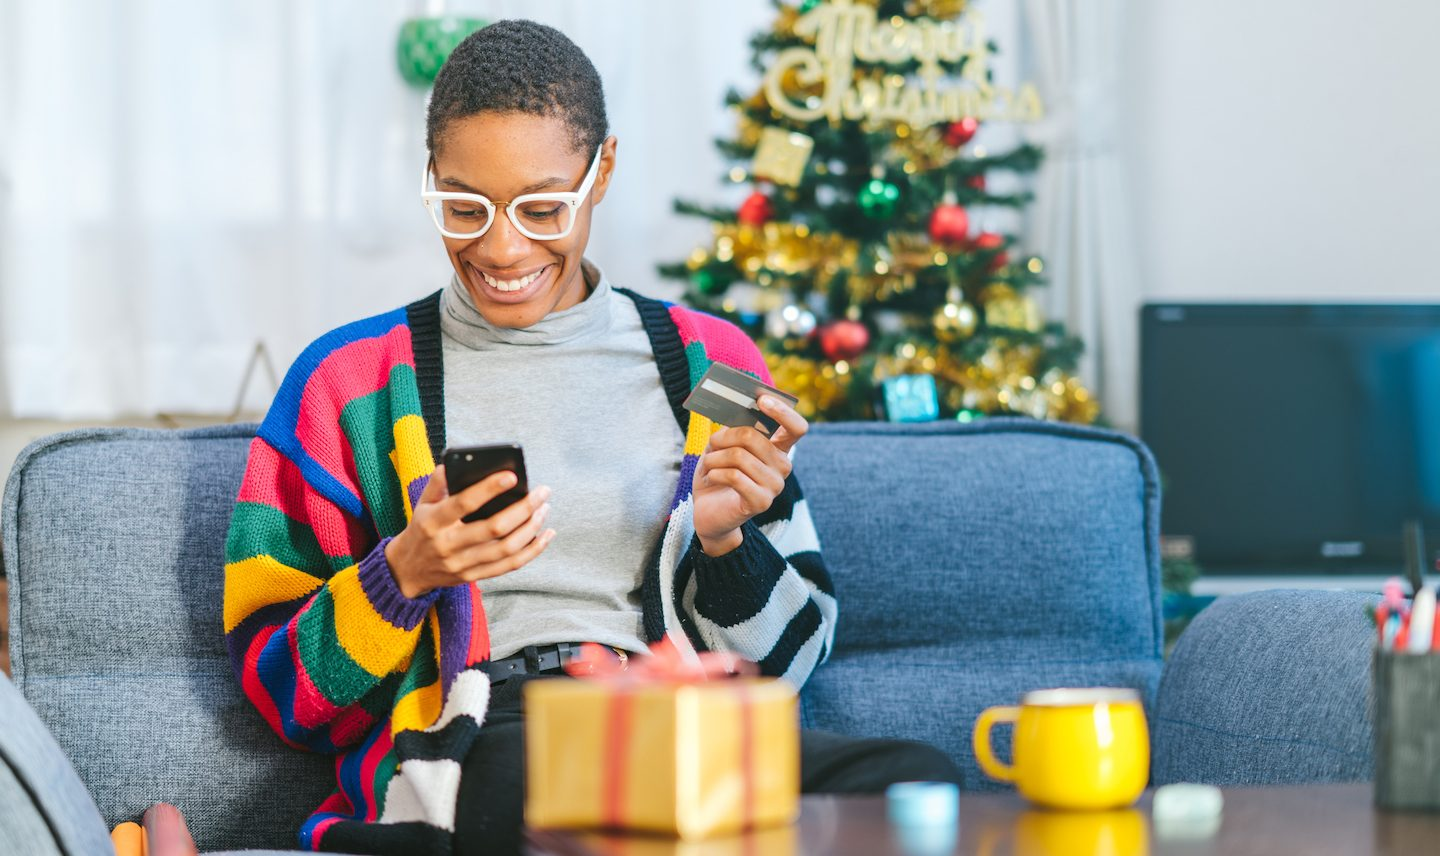 woman using credit card with buy now pay later at christmas